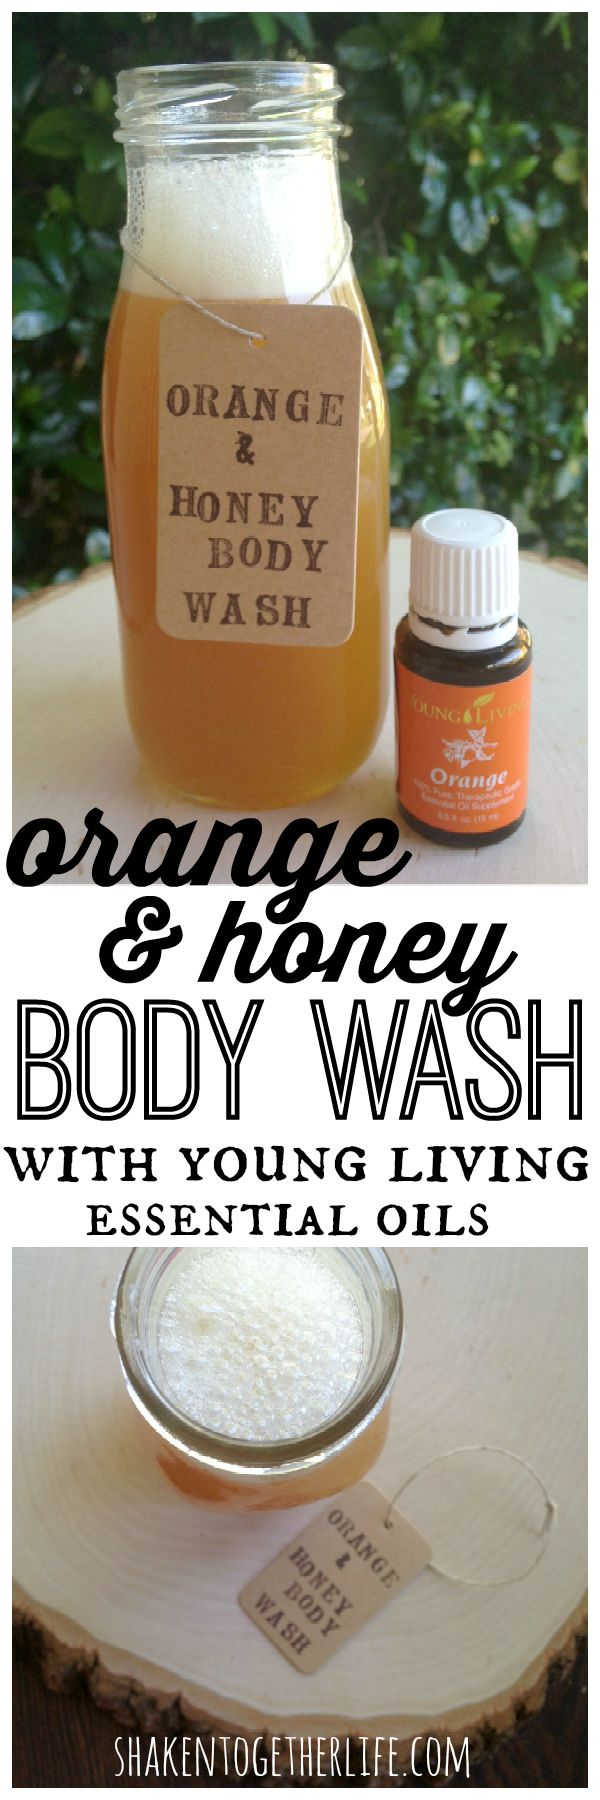 Orange and honey body wash with Young Living essential oil!  Our orange is also rated GRAS so it's great for kitchen recipes too!  www.youngliving.org/megamom9  sponsor/enroller 1189943